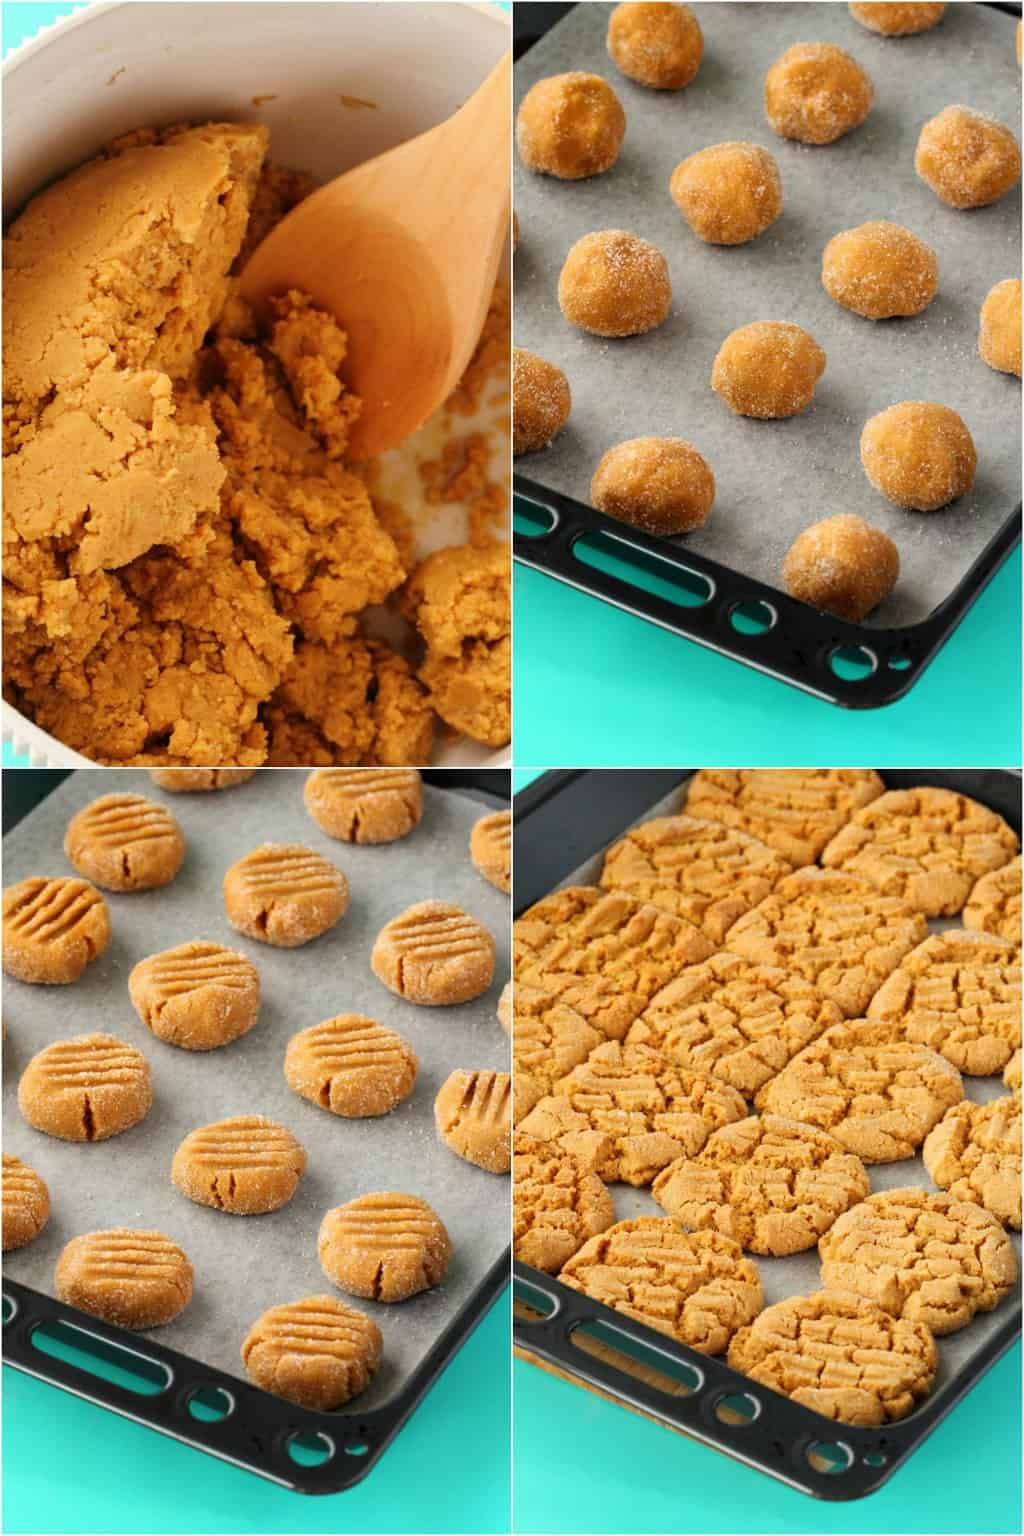 Step by step process photo collage of making vegan peanut butter cookies.